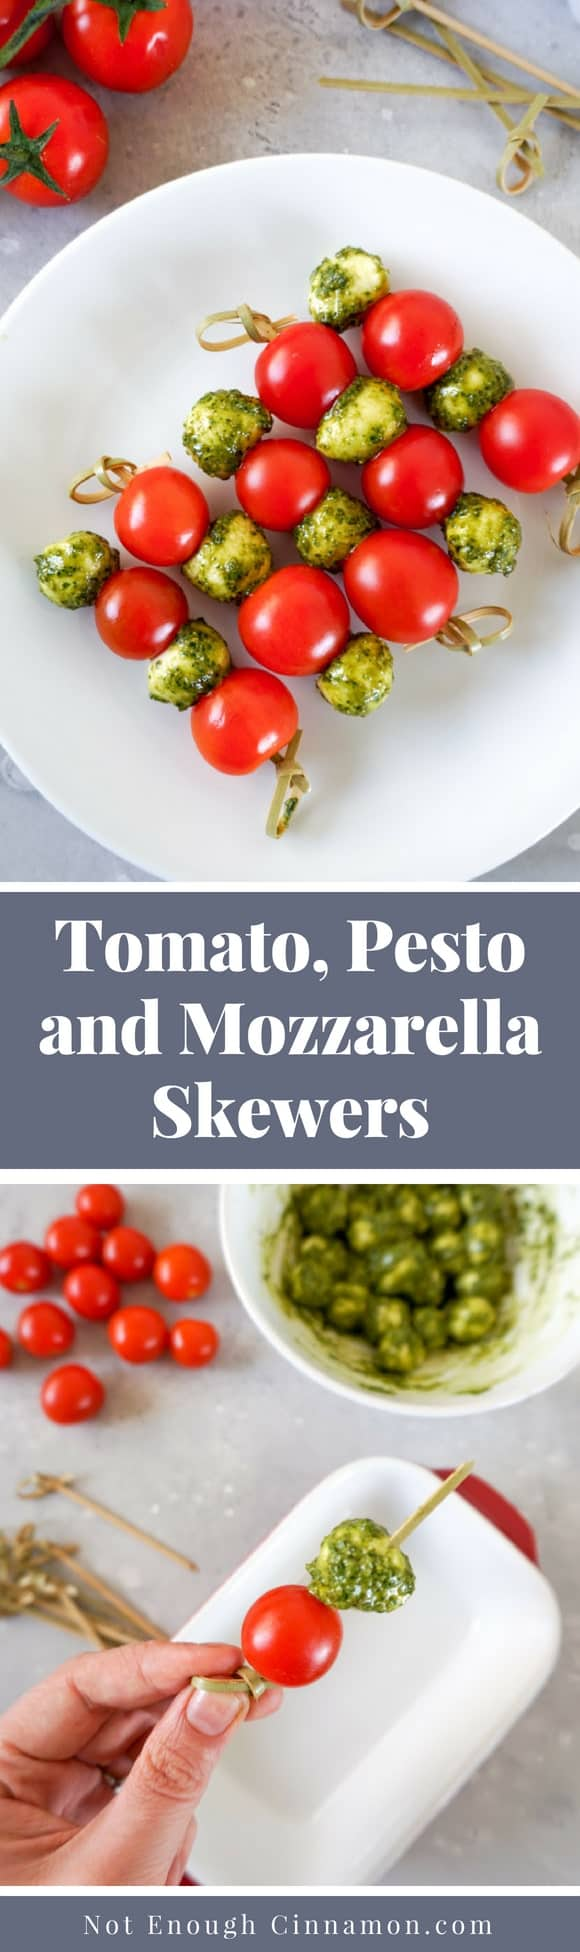 An easy appetizer you can prepare in just a few minutes. These skewers are a real crowd-pleaser. Recipe on NotEnoughCinnamon.com #healthyrecipe #healthyappetizer #summerappetizer #appetizerrecipe #easyappetizer